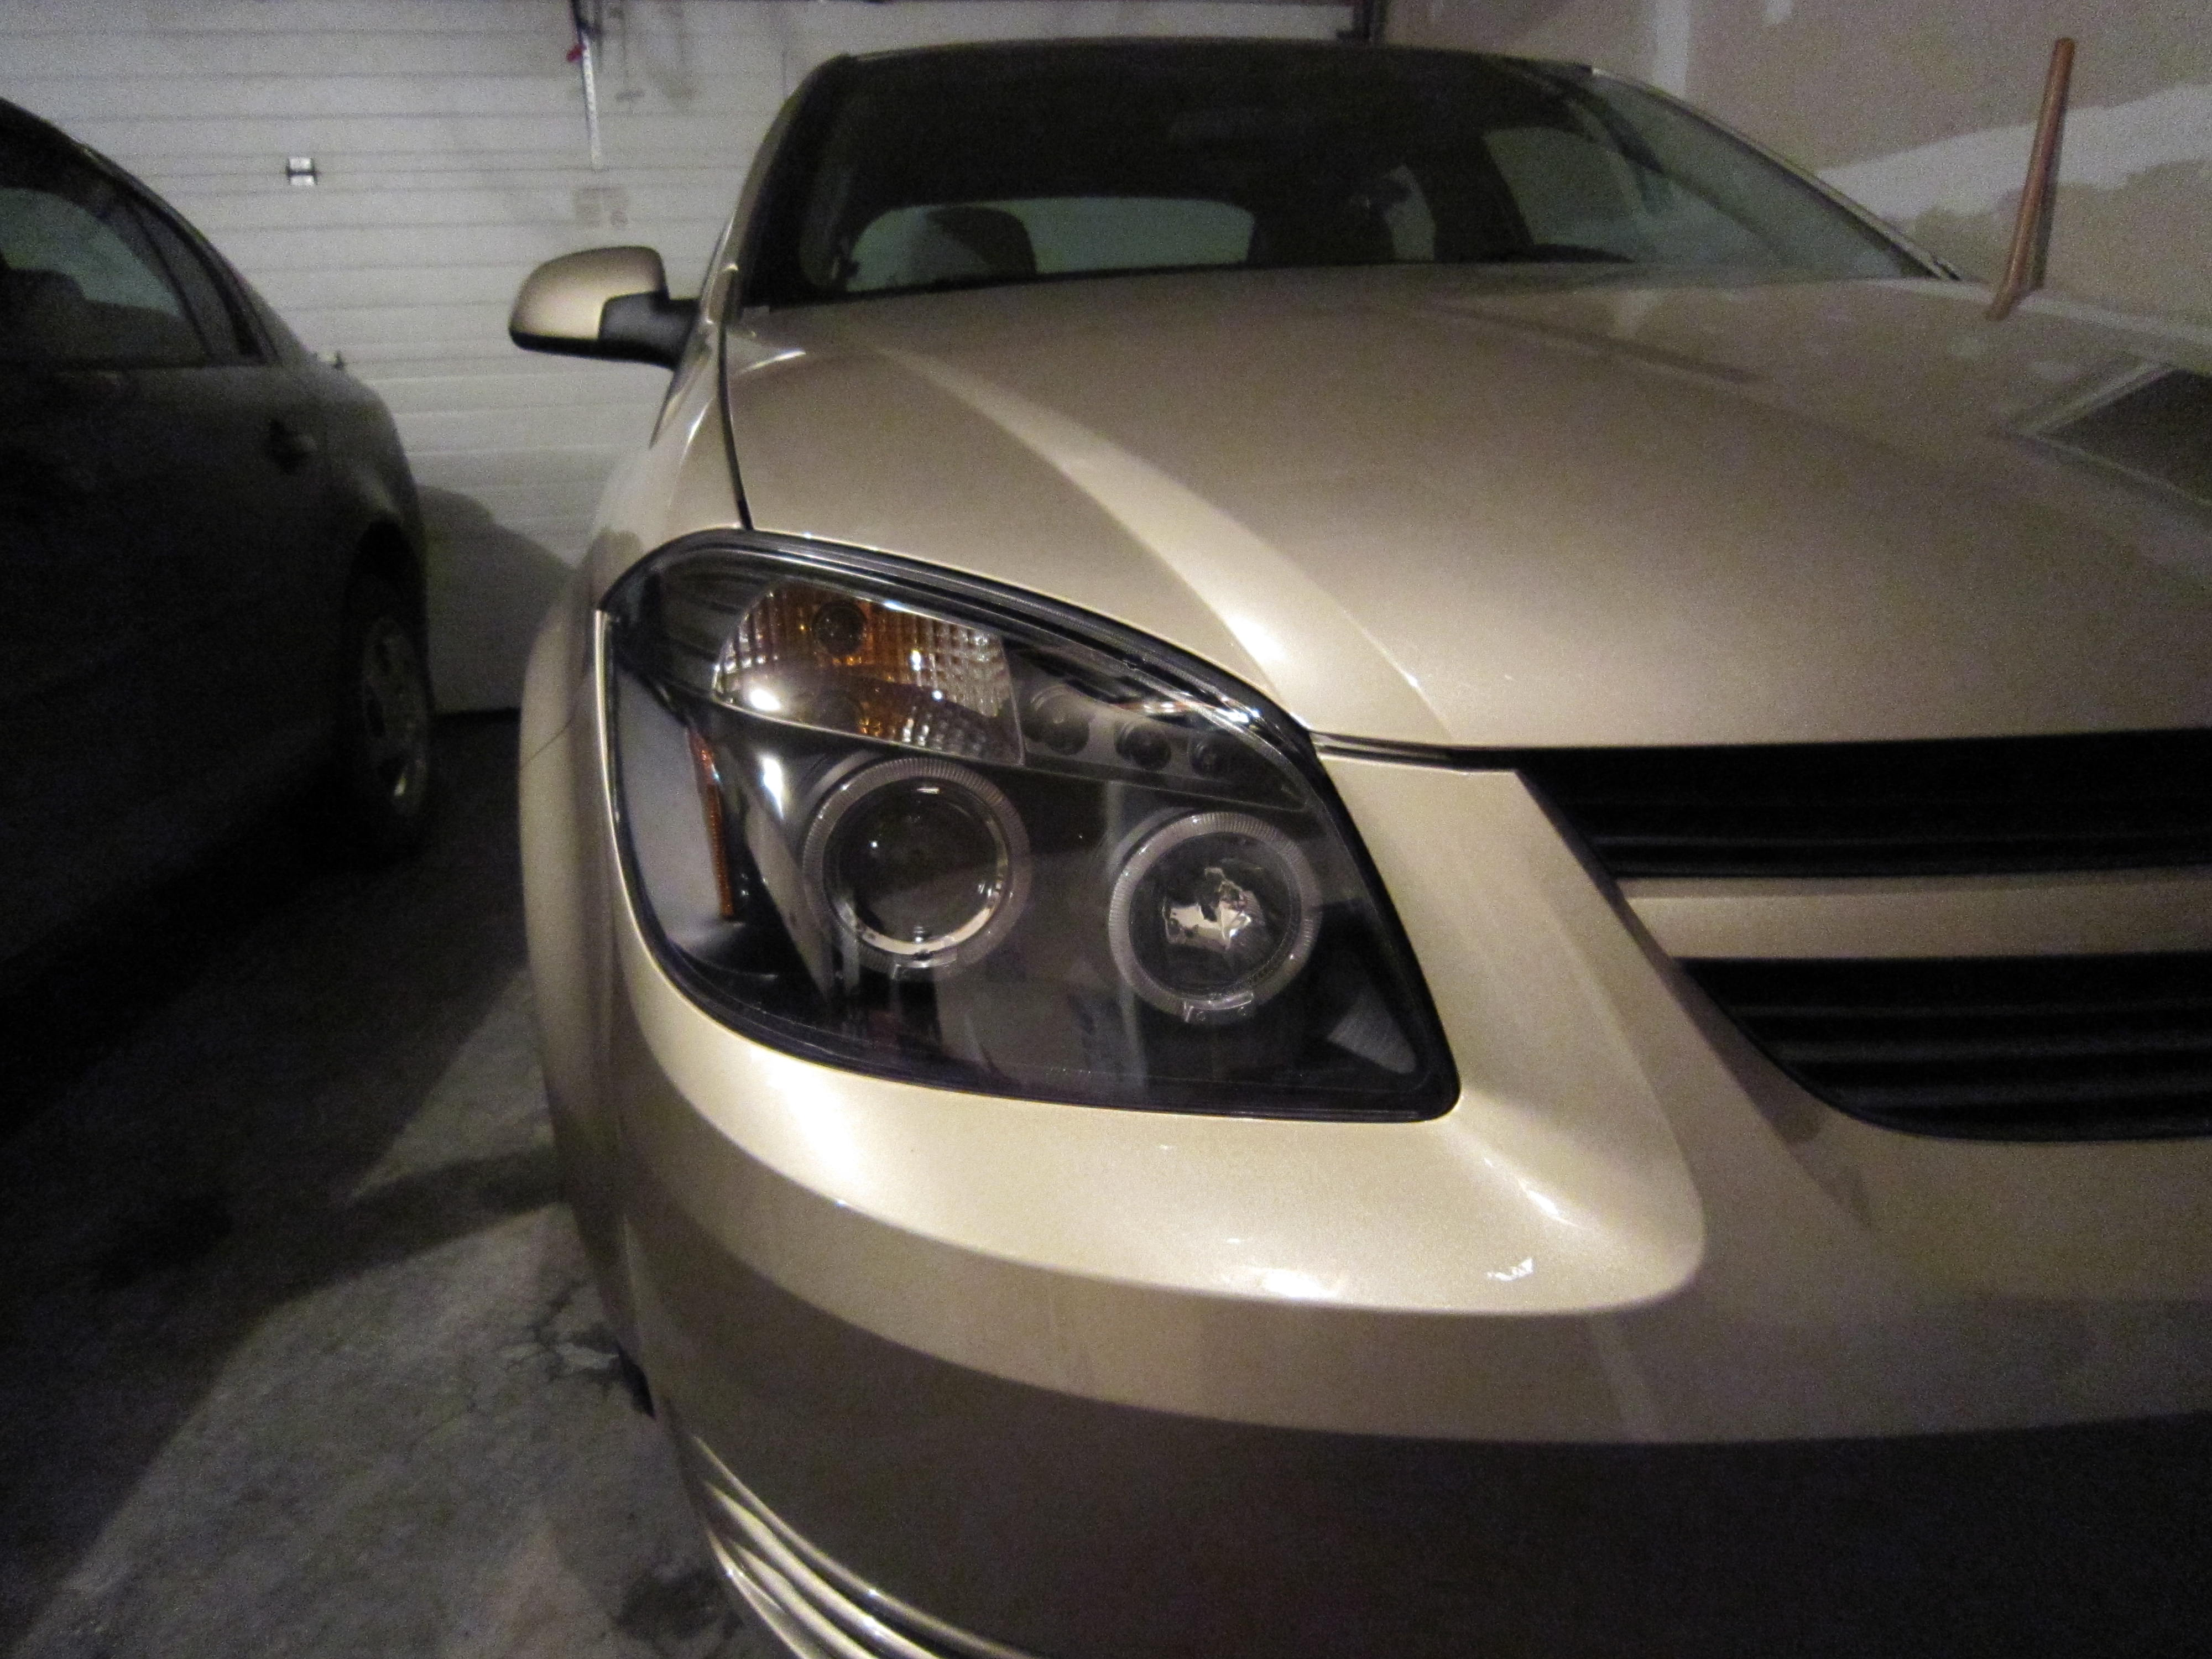 2008 Chevrolet Cobalt LT | Flickr - Photo Sharing!